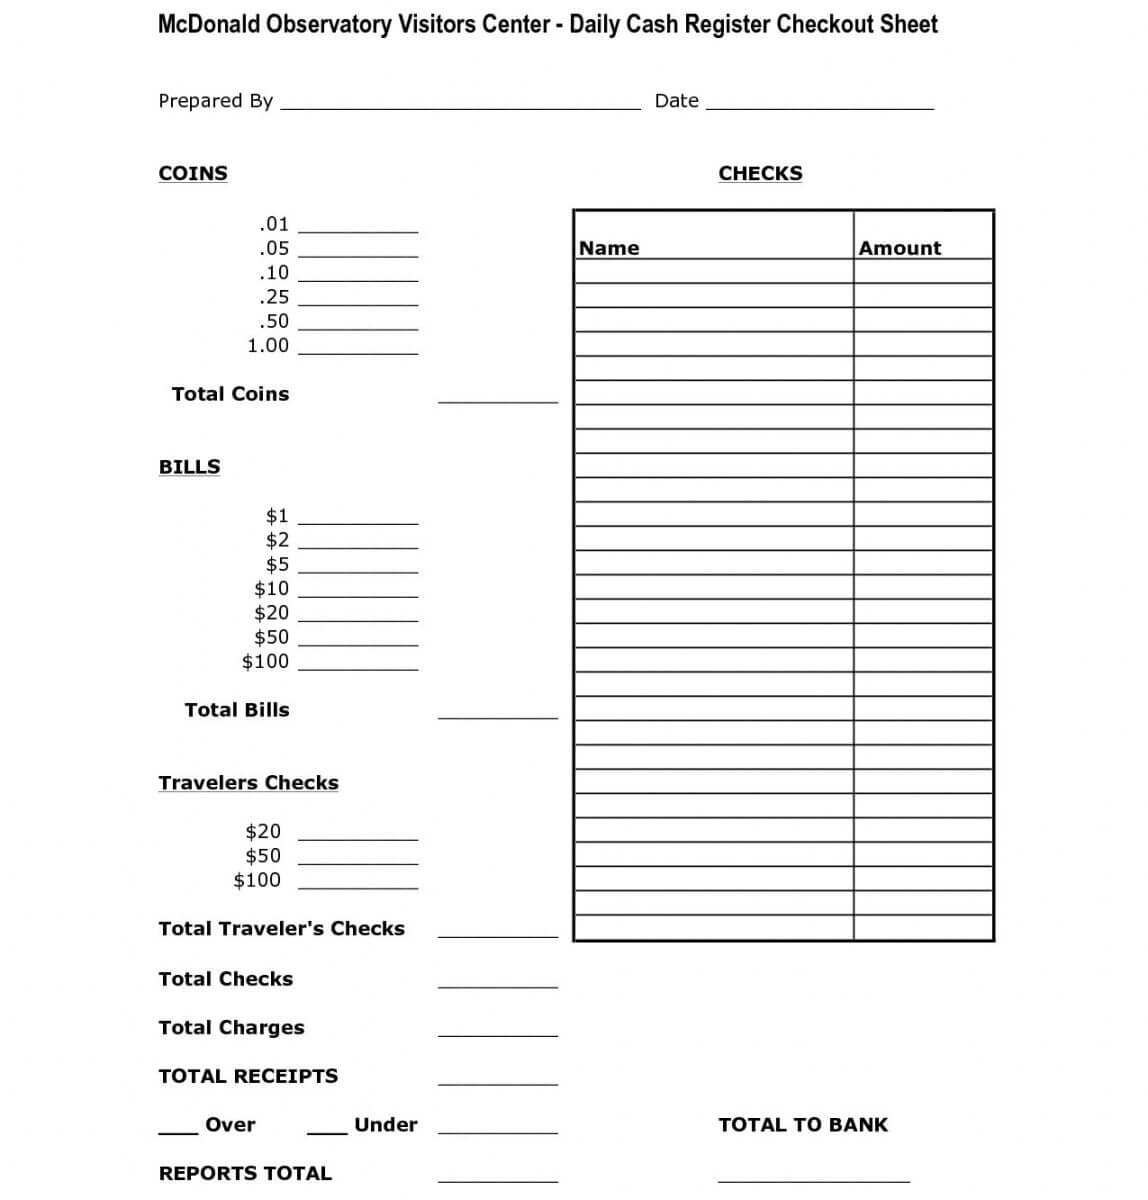 Free End Of Day Cash Register Report Template Professional in End Of Day Cash Register Report Template